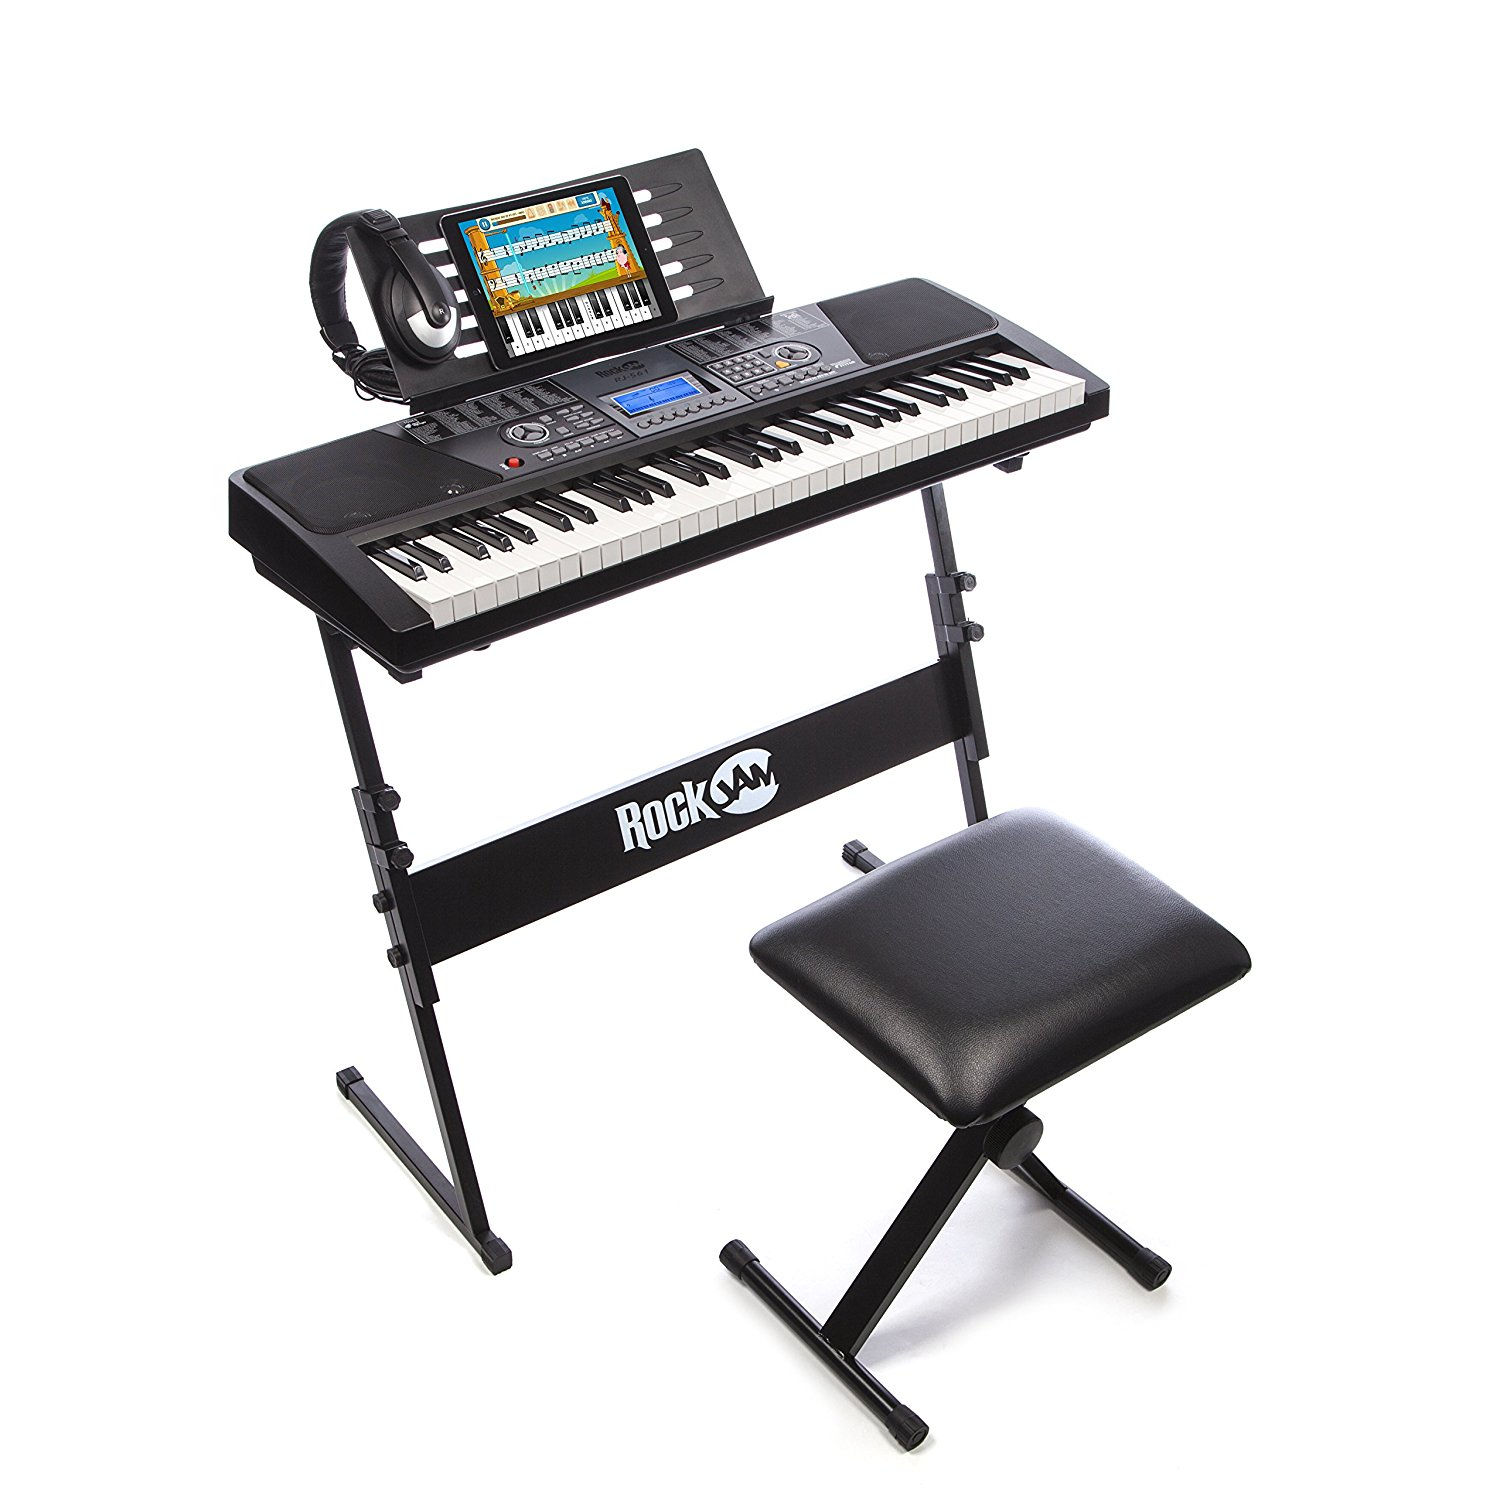 Choosing digital pianos for children